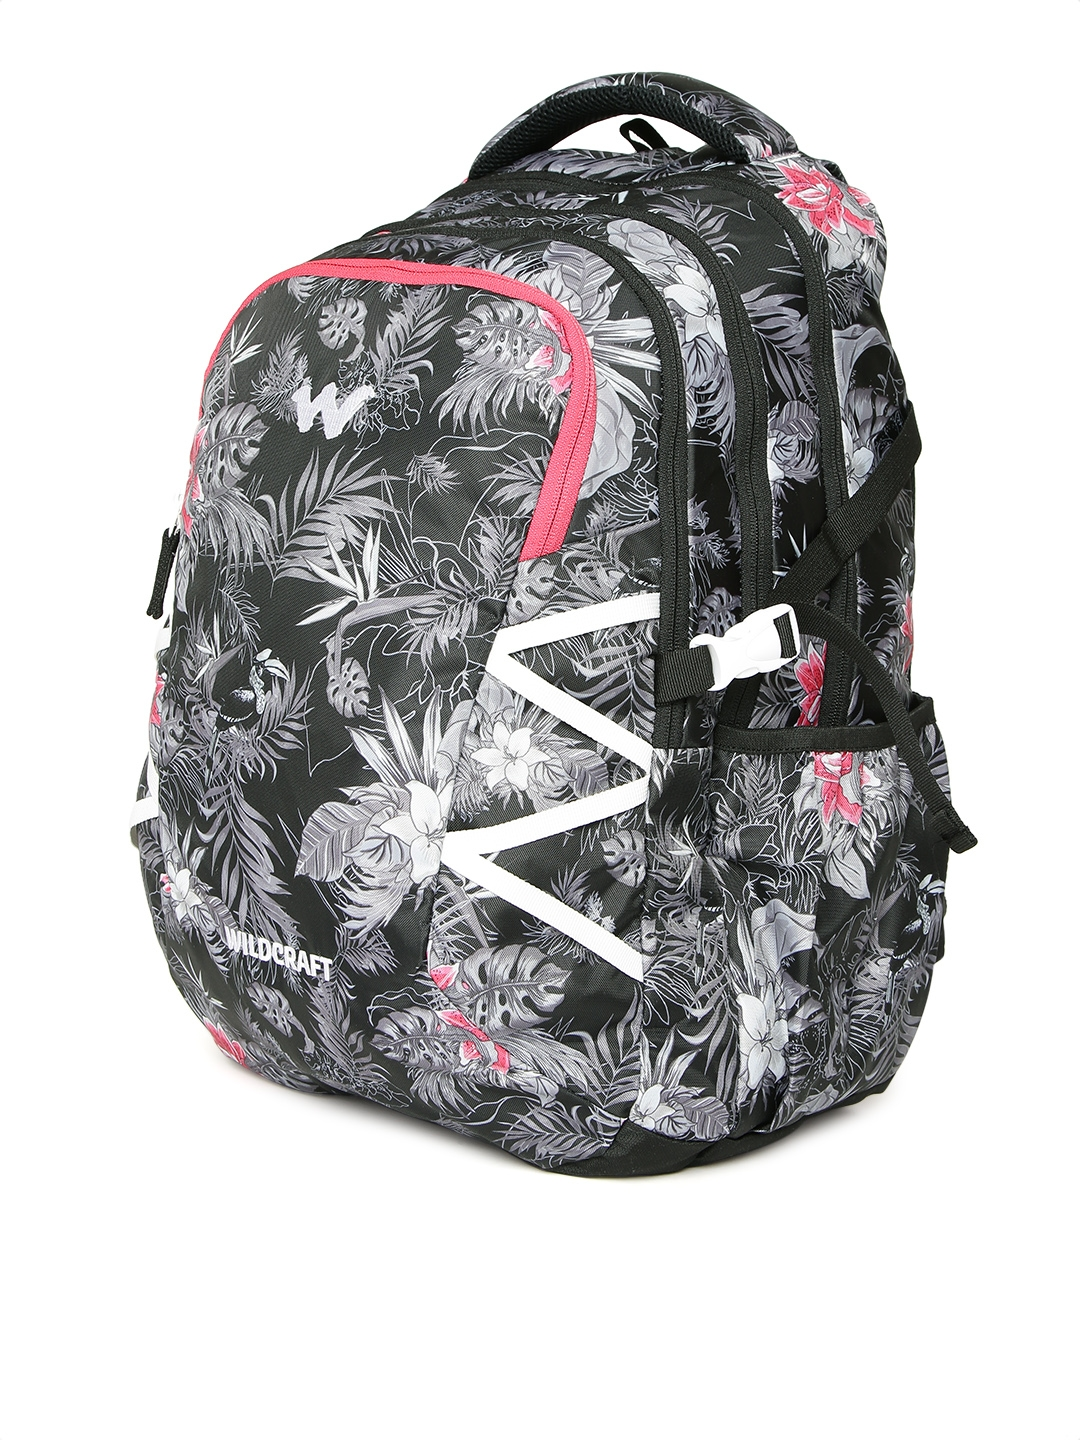 Buy Wildcraft Unisex Black WC 9 Flora 6 Printed Laptop Backpack ... 7c492fcadc0a7